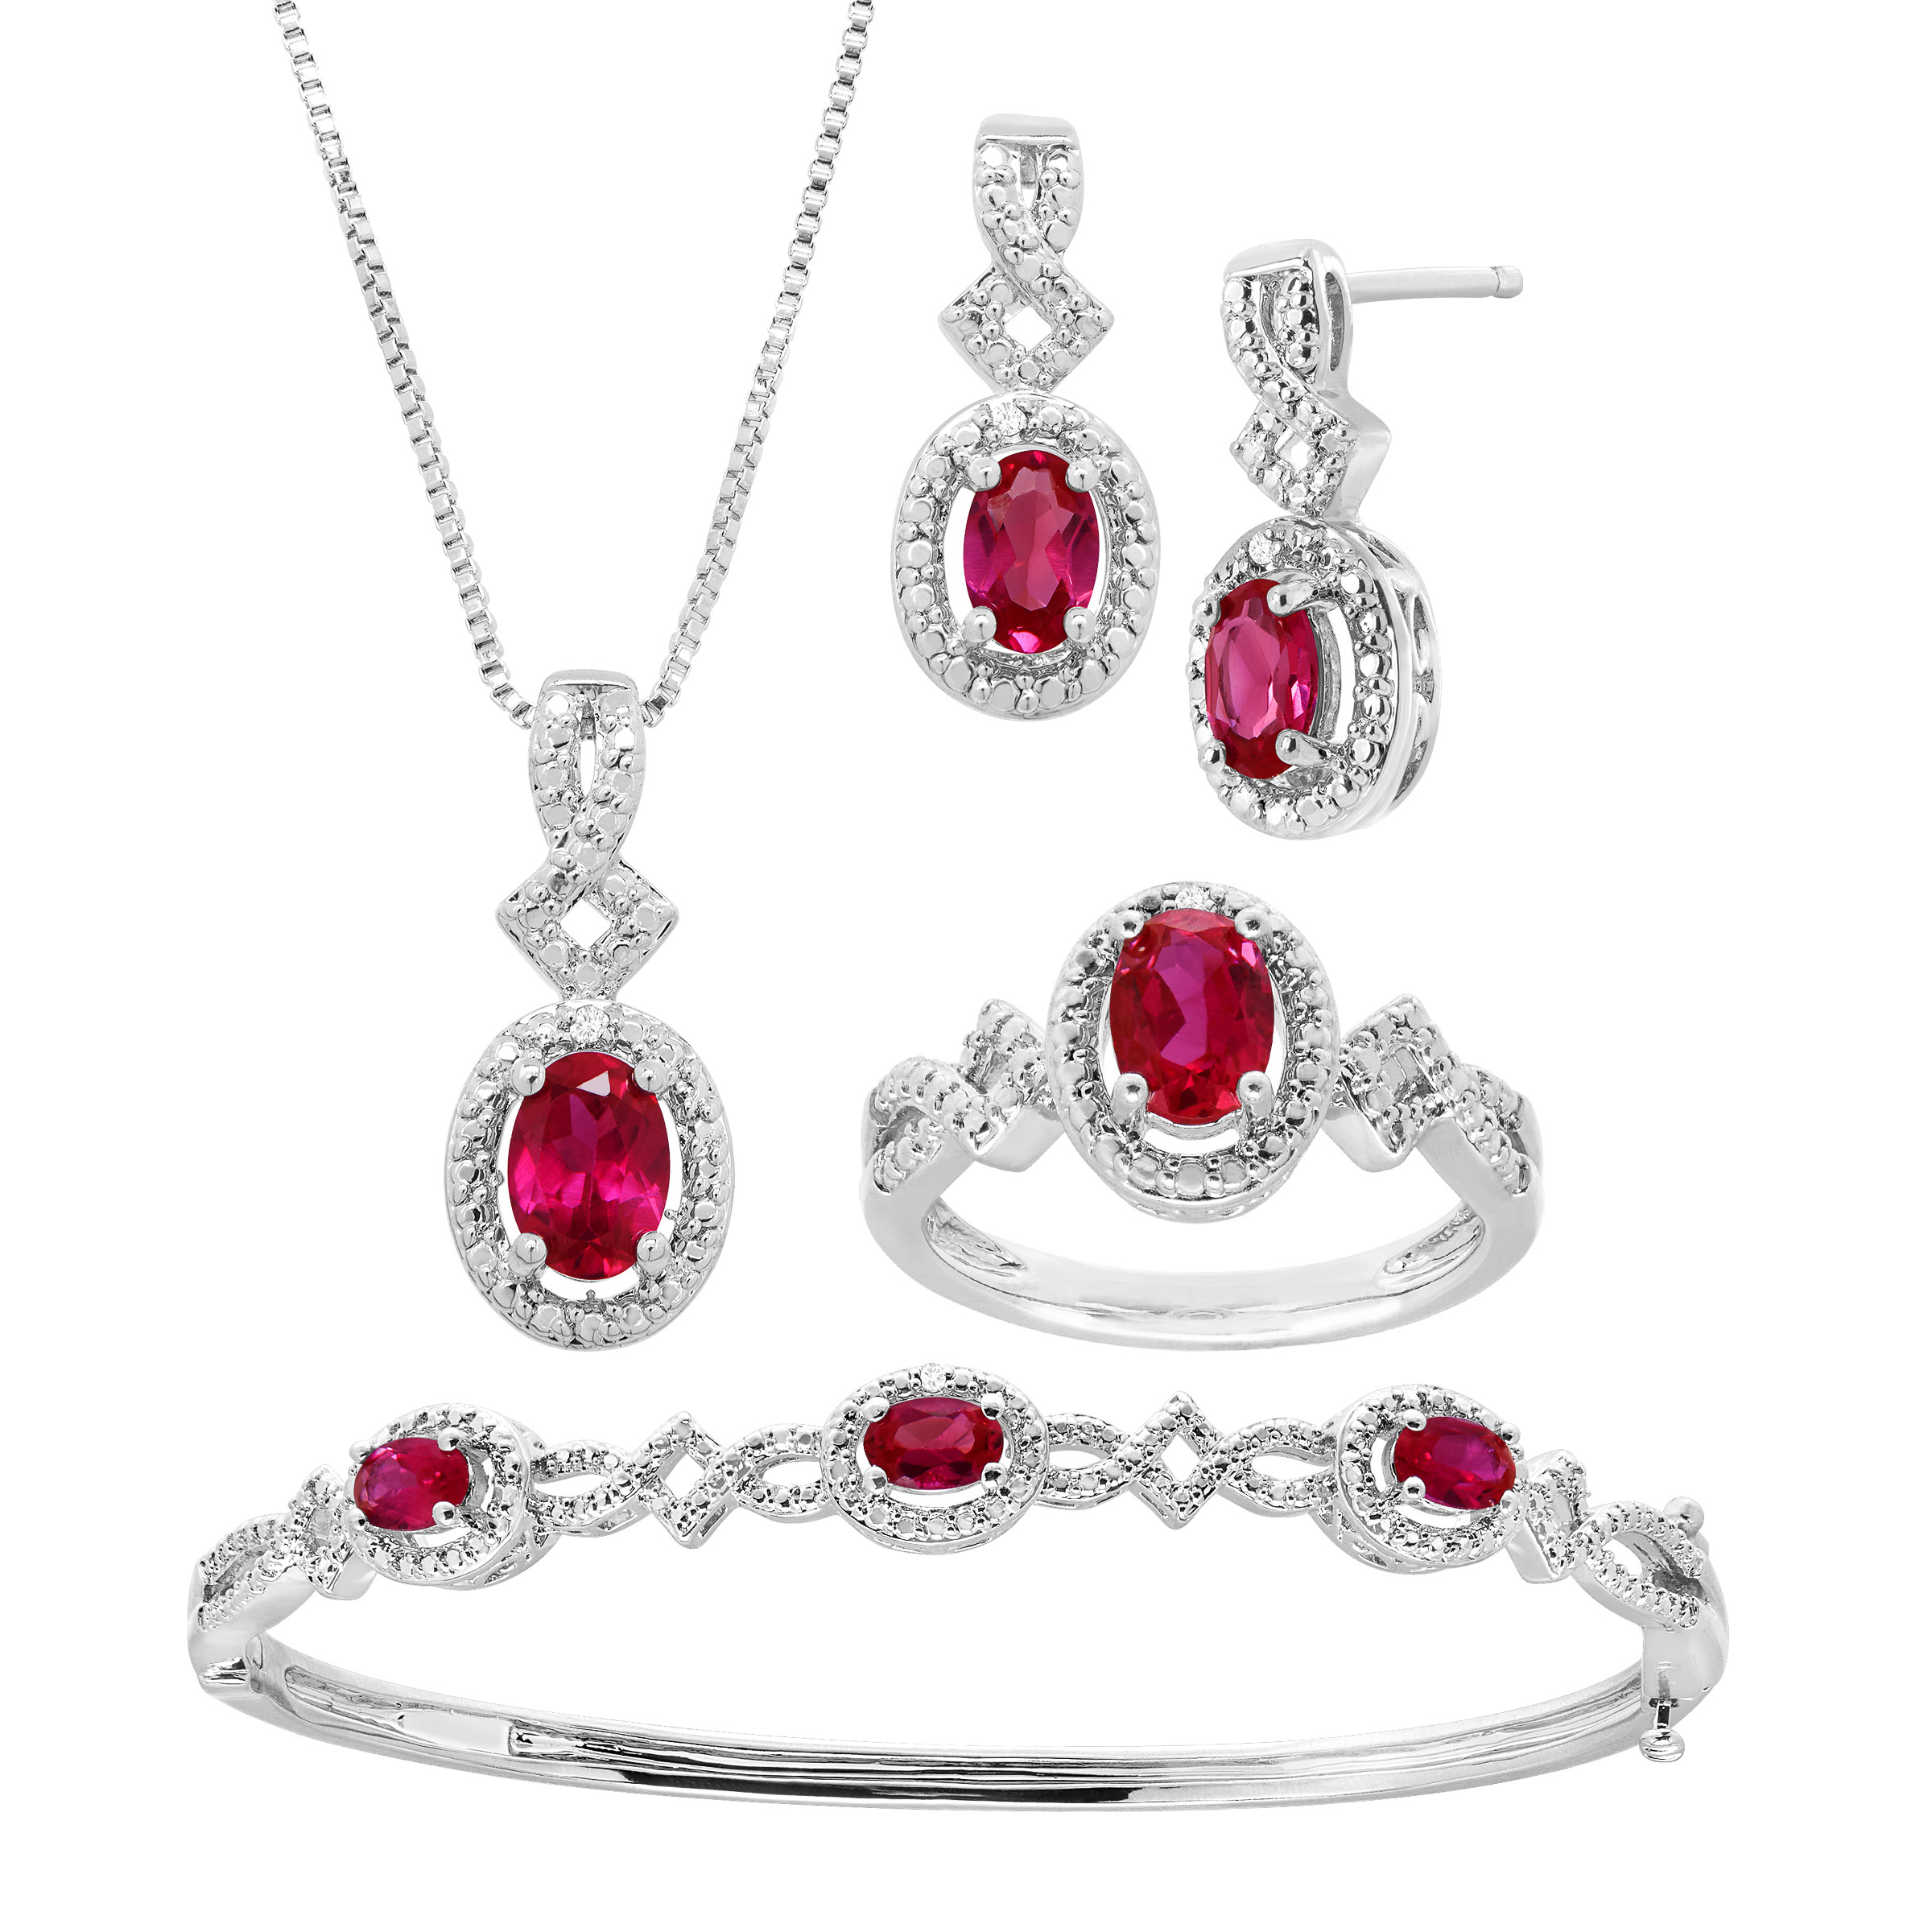 5 ct Created Ruby Pendant, Bracelet, Earring & Ring Set with Diamonds in 14kt White Gold-Plated Brass by Richline Group